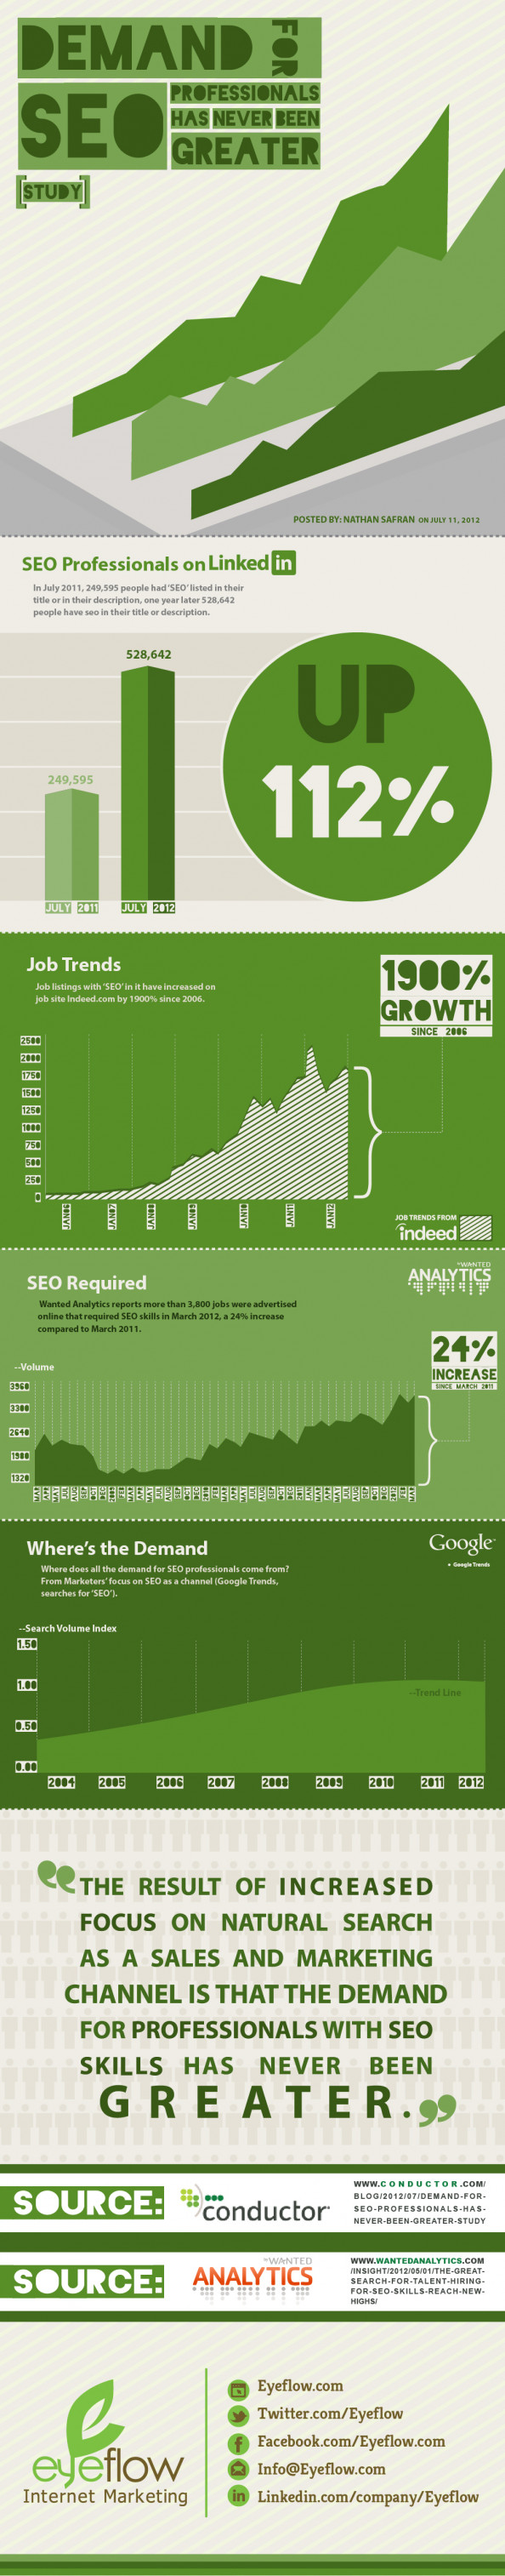 Eyeflow Internet Marketing Infographic